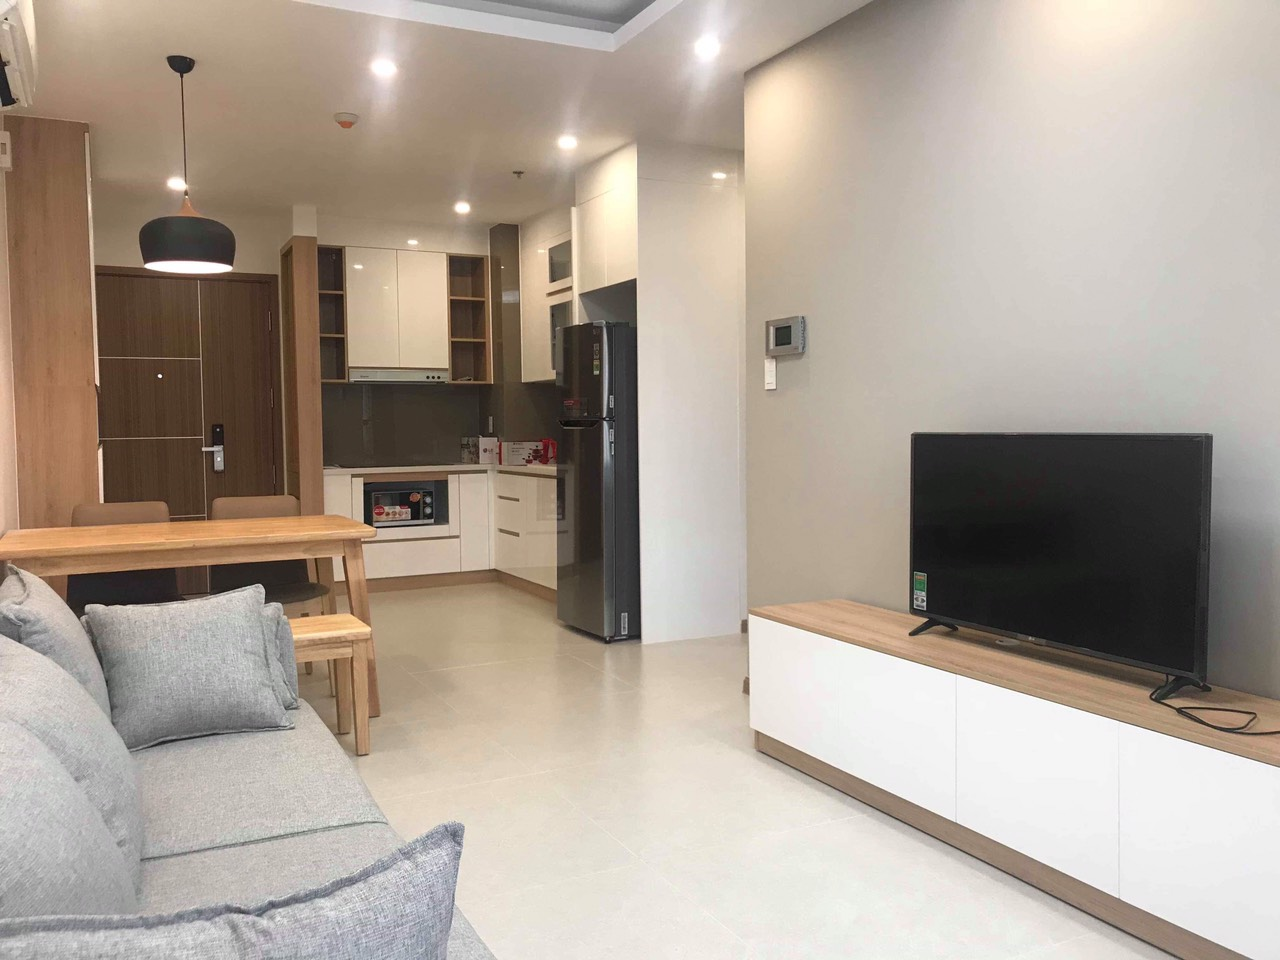 apartment for rent in district 2 hcmc new city apartment for rent in district 2 hcmc D22446 (3)